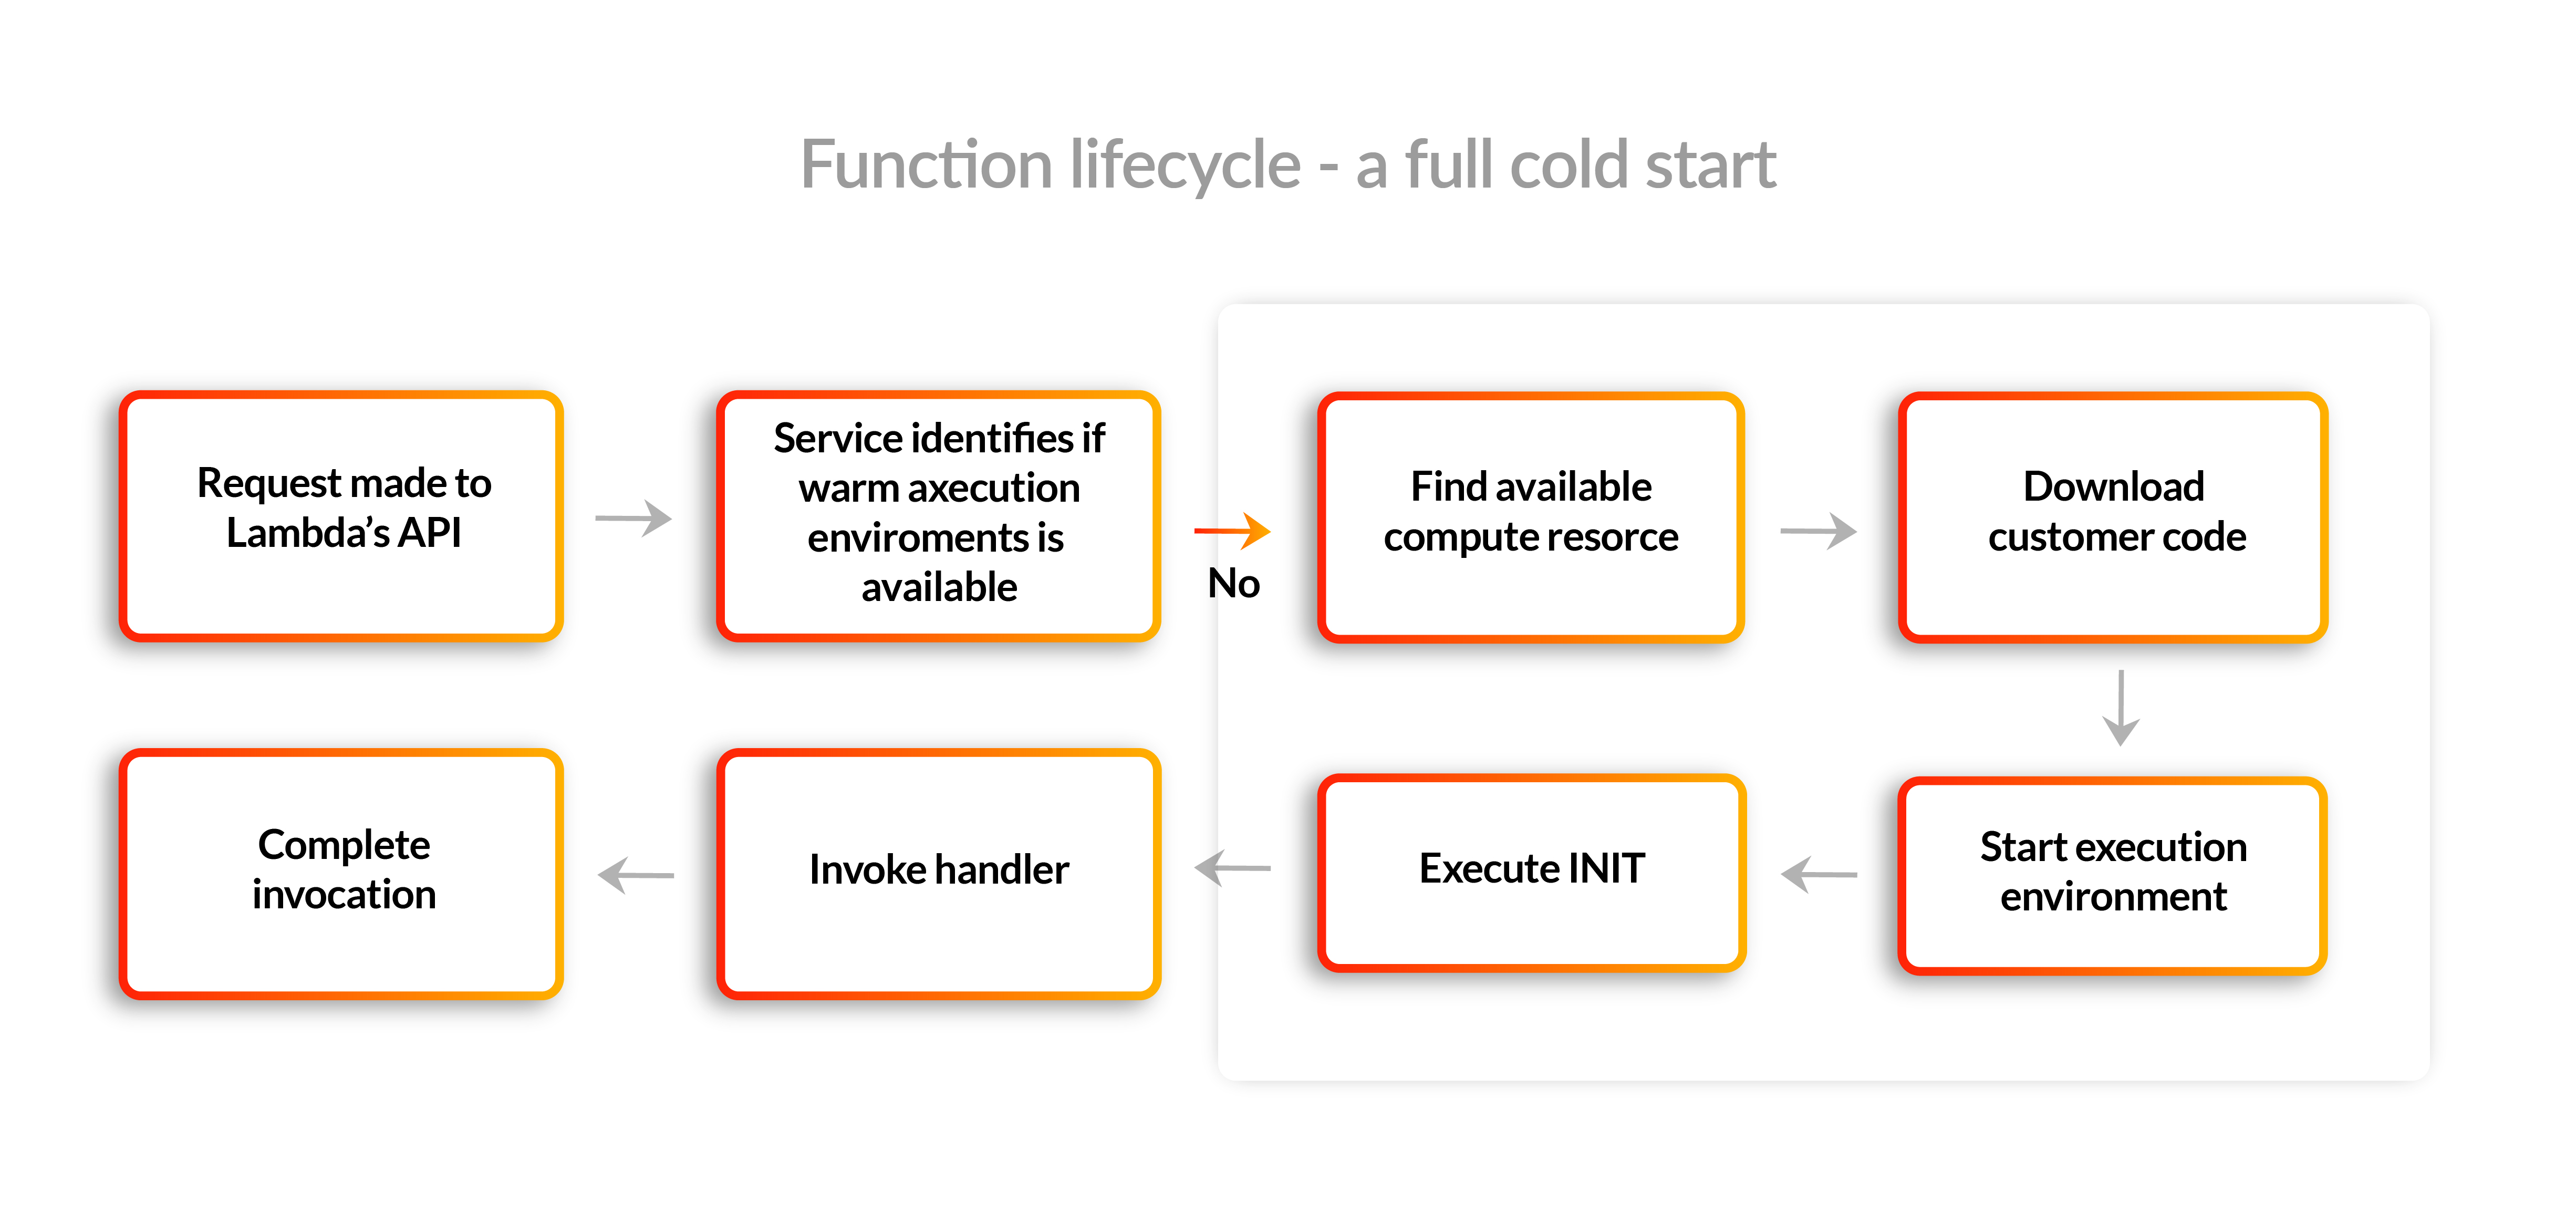 Function lifecycle - a full cold start